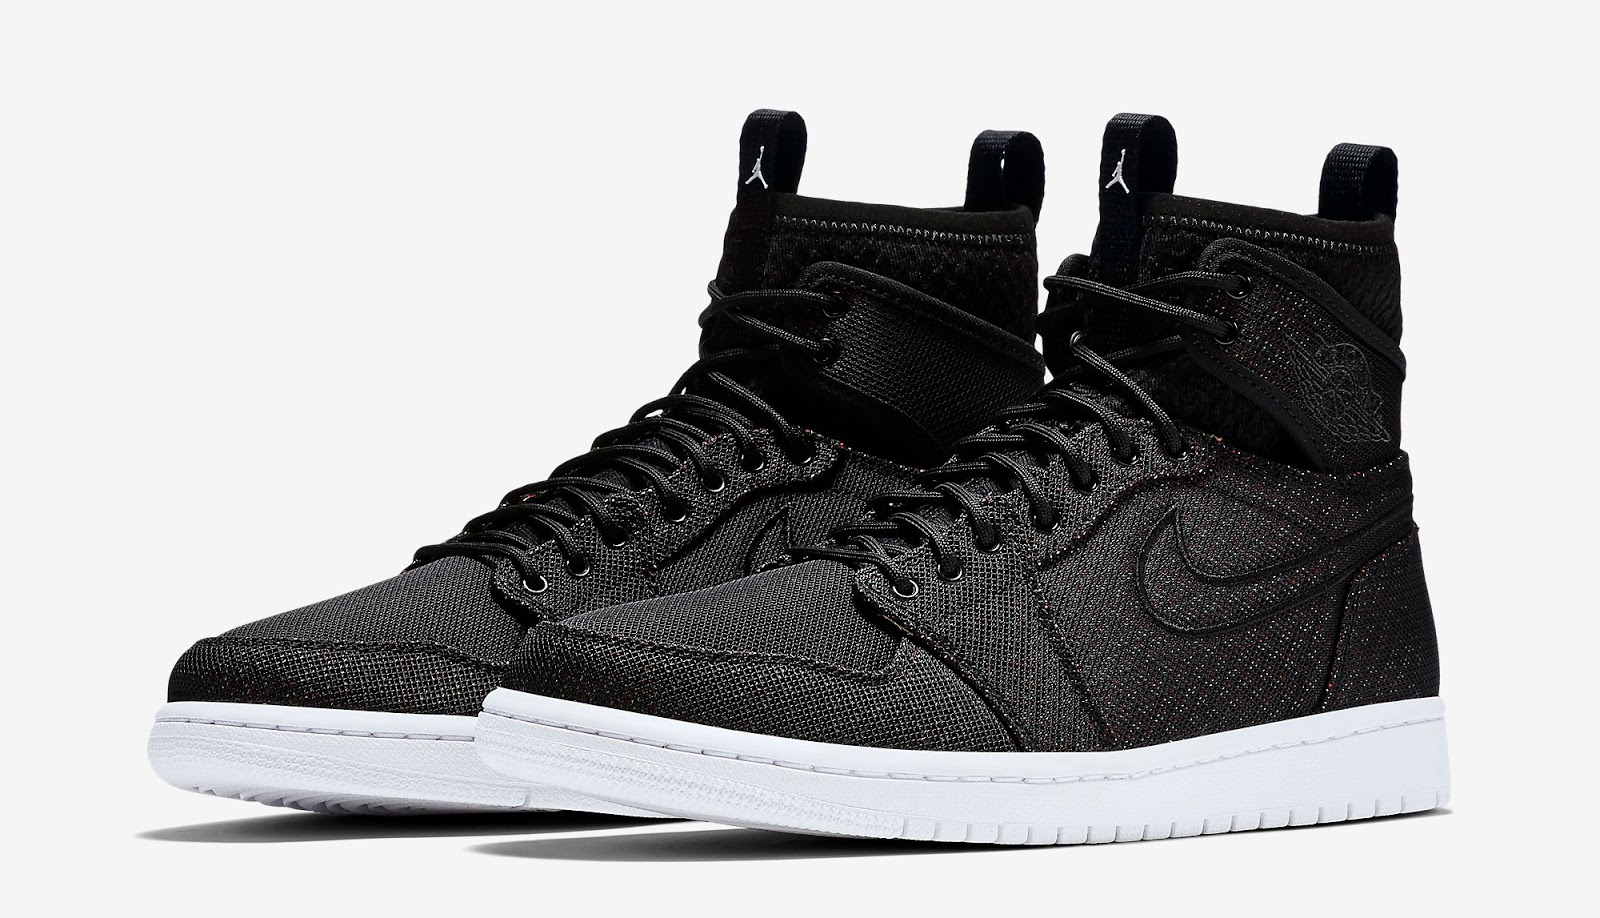 ajordanxi Your  1 Source For Sneaker Release Dates  Air Jordan 1 Retro  Ultra High Black Blue Lagoon-Infrared 23-Ghost Green Release Reminder d180528f73